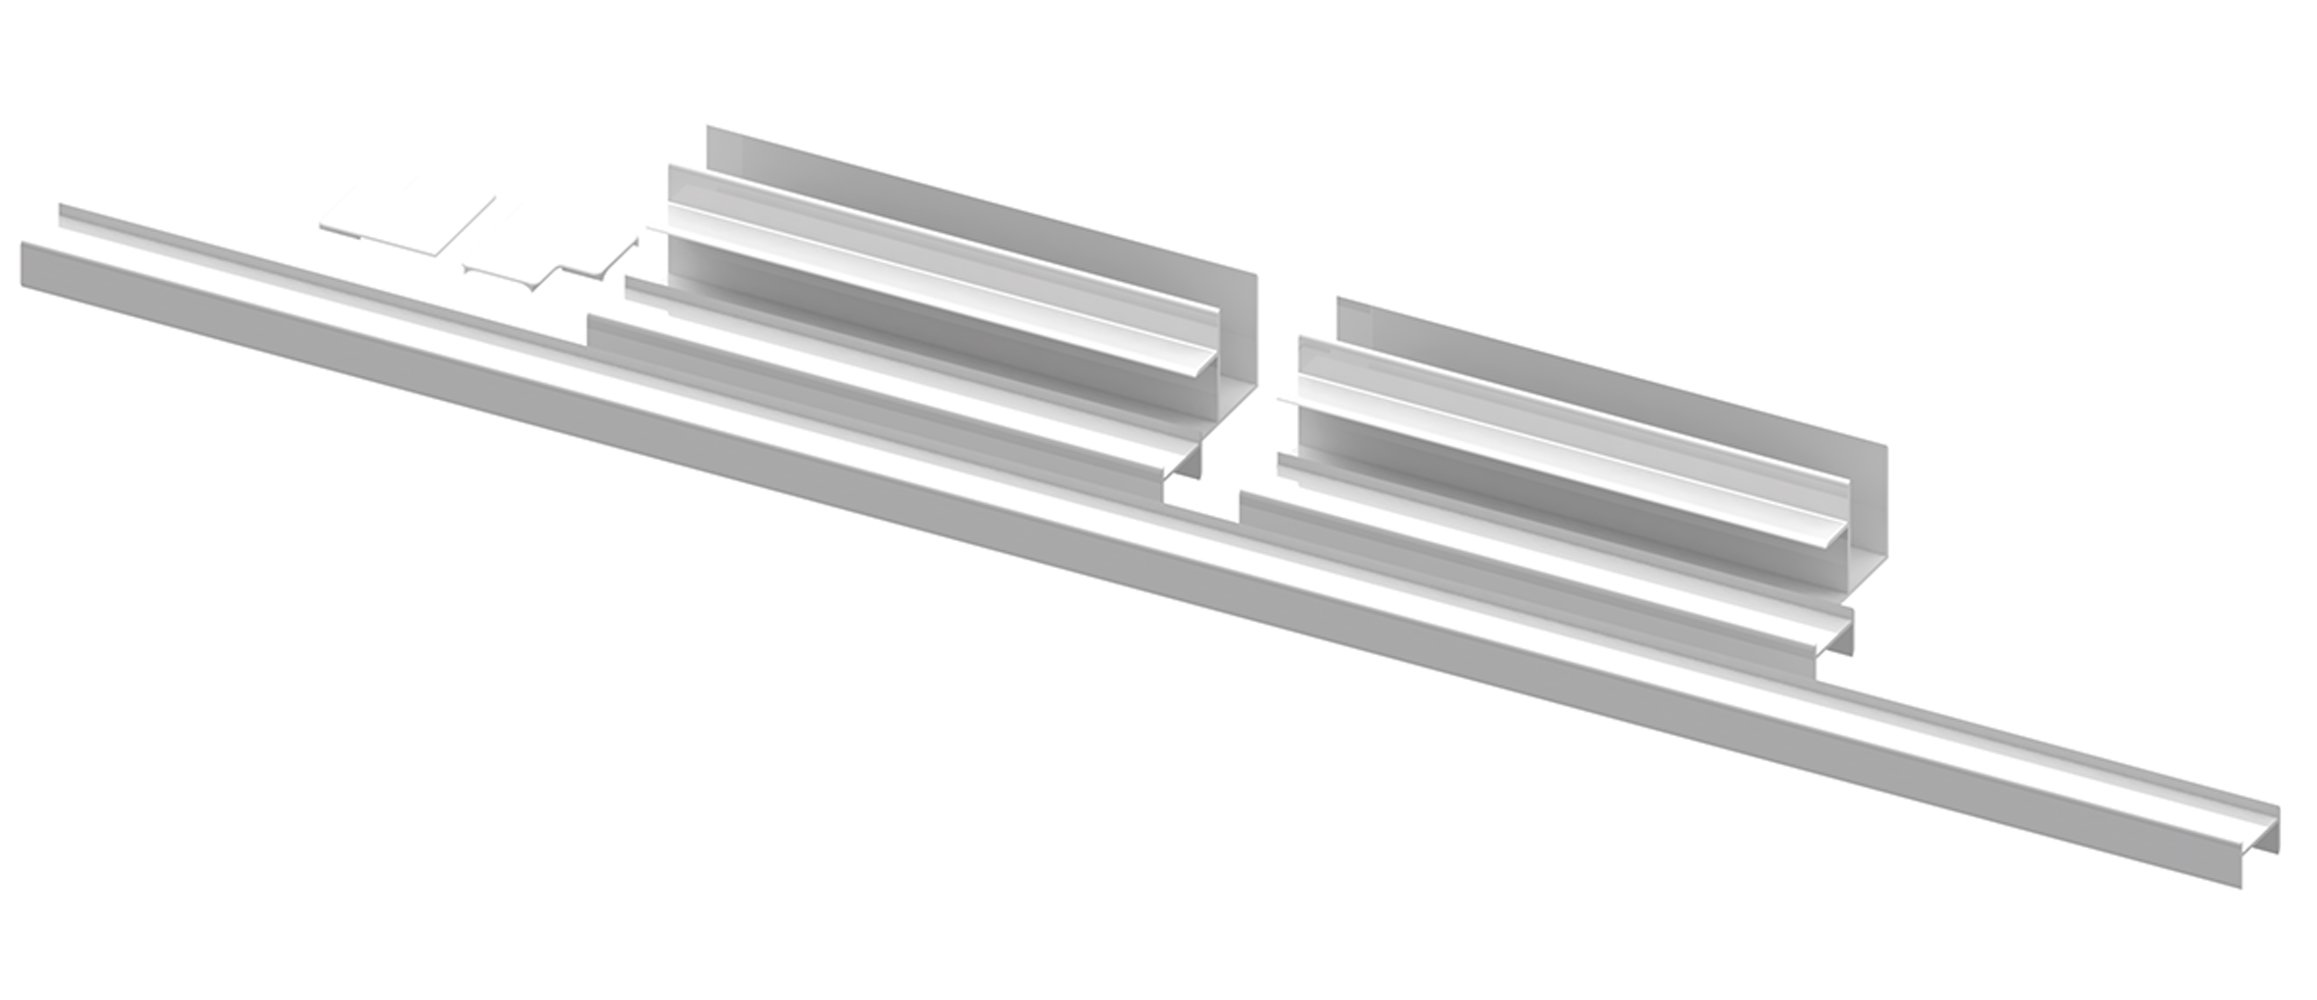 Superior Lawn and Garden Raised Bed Stacking Kit, White by Superior Lawn and Garden